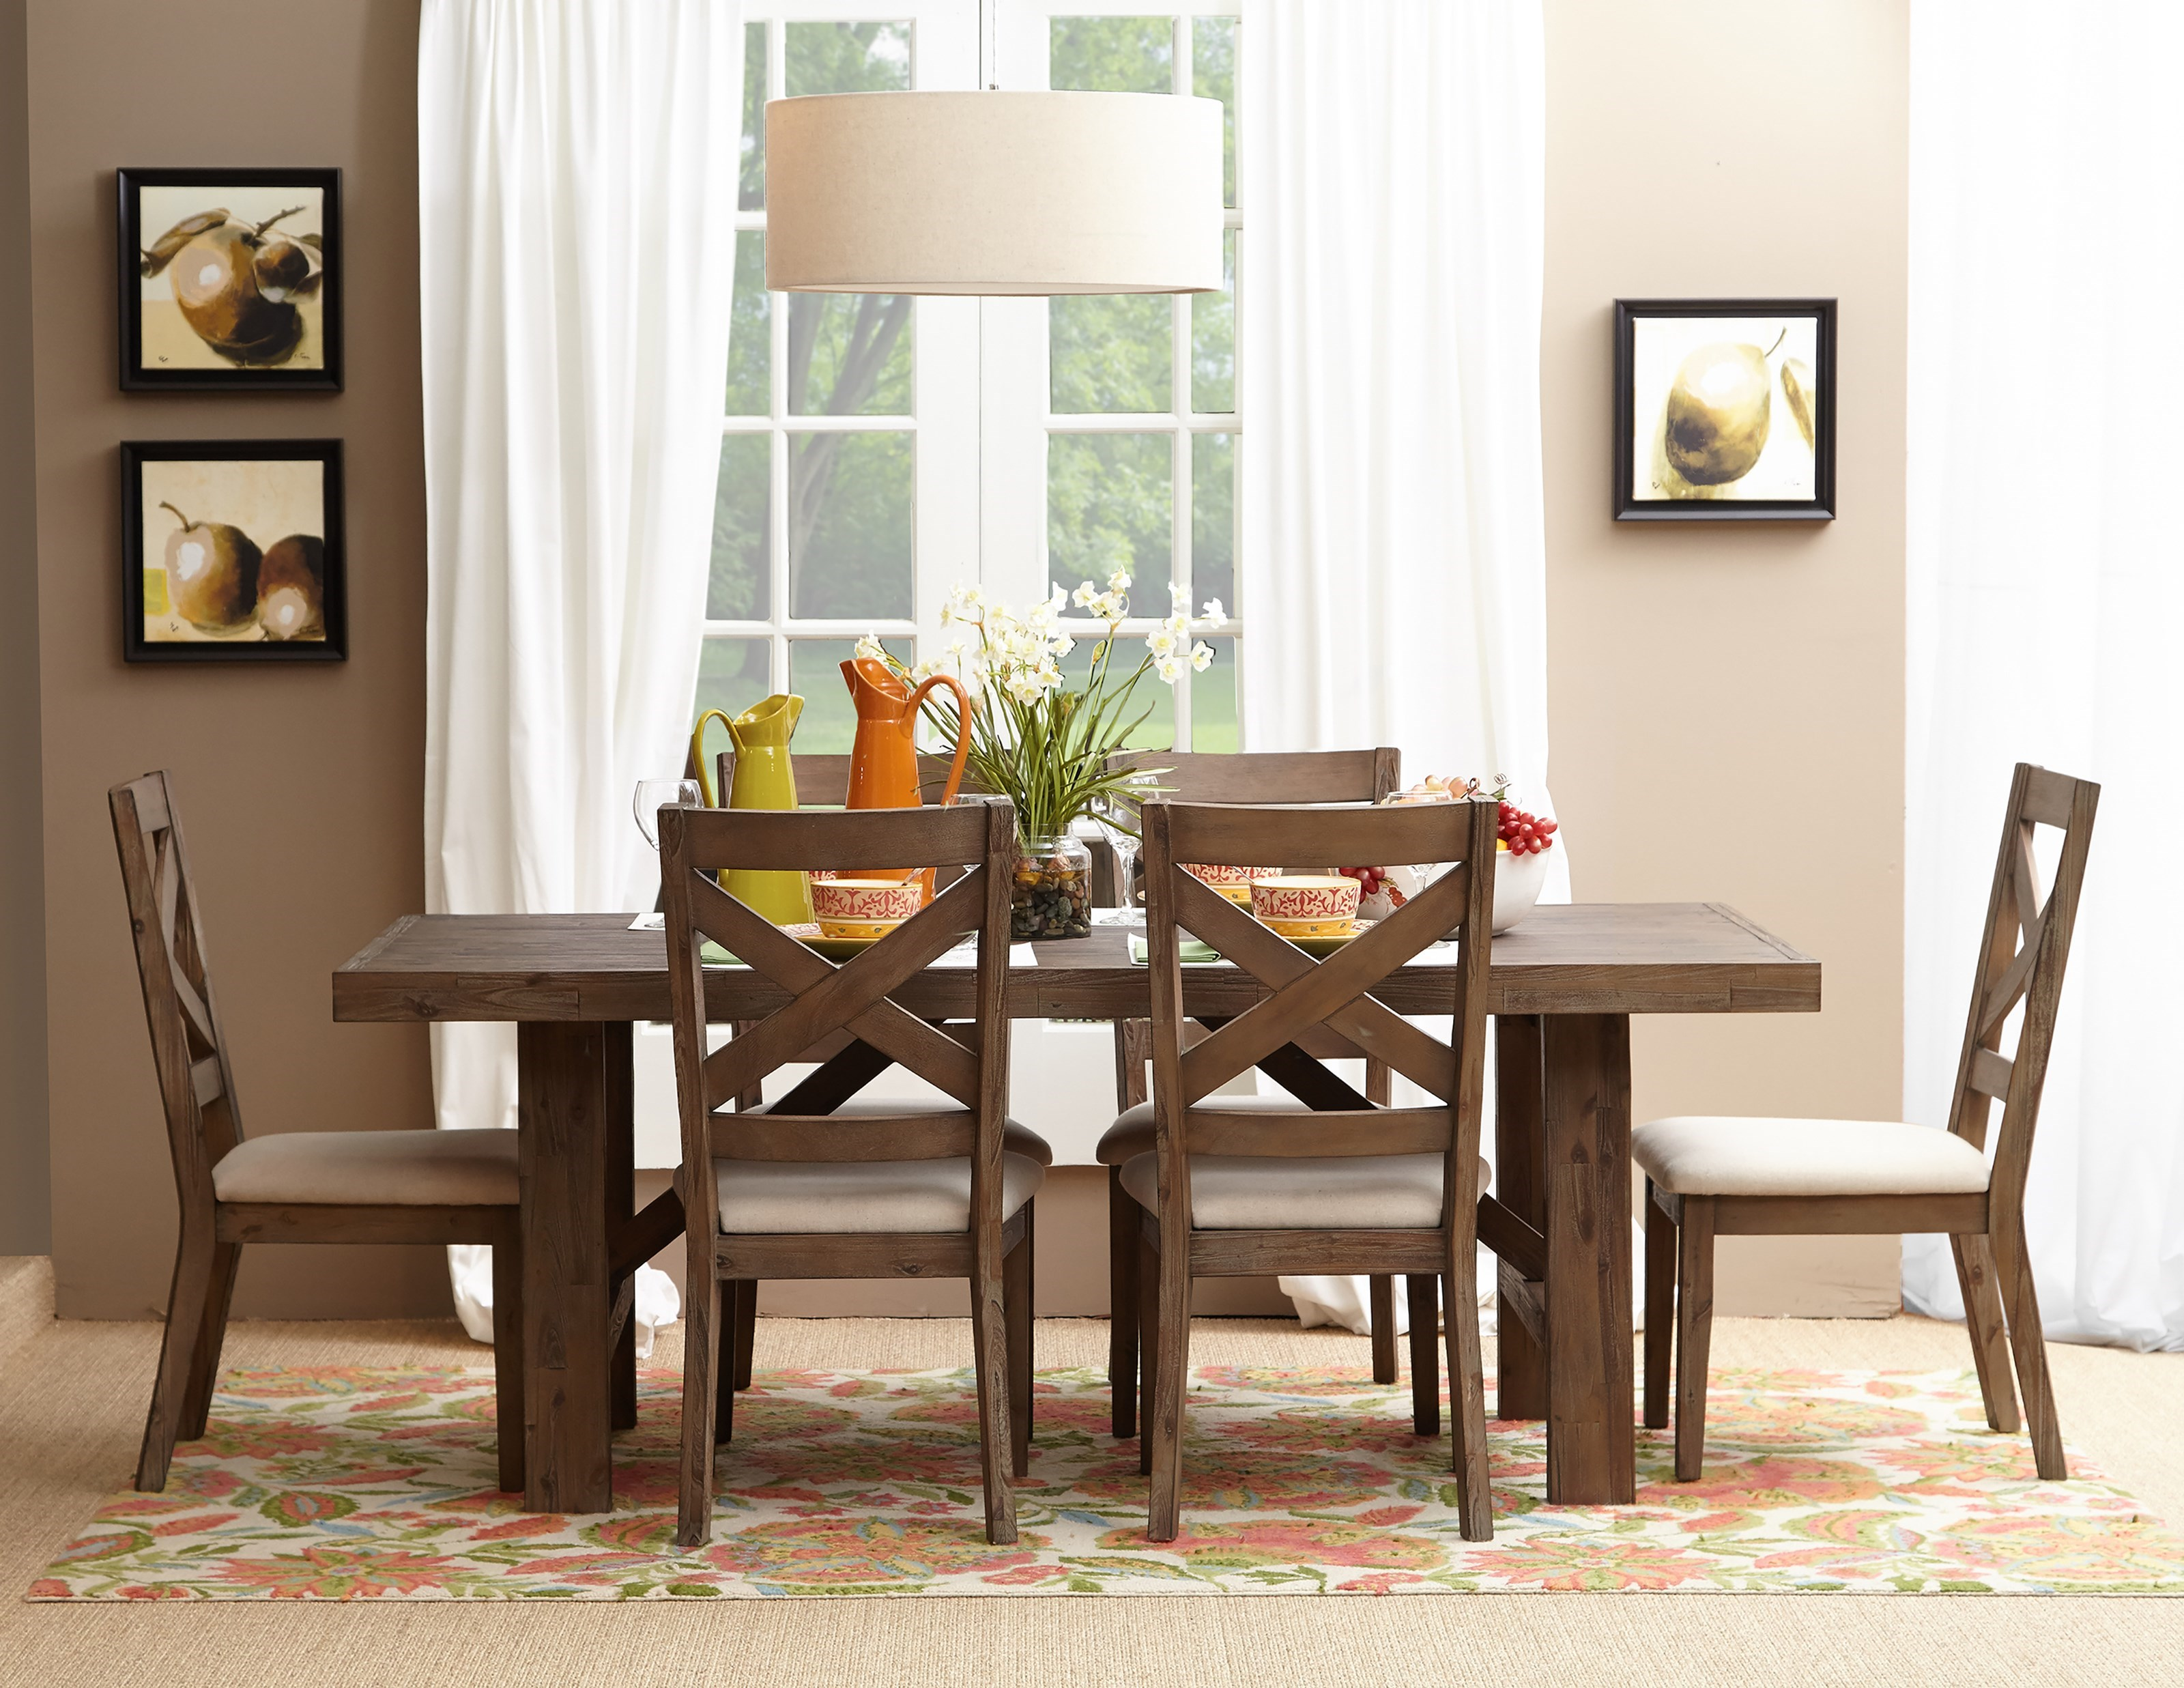 Belfort Essentials Hampton Road Trestle Dining Table And Chair Set